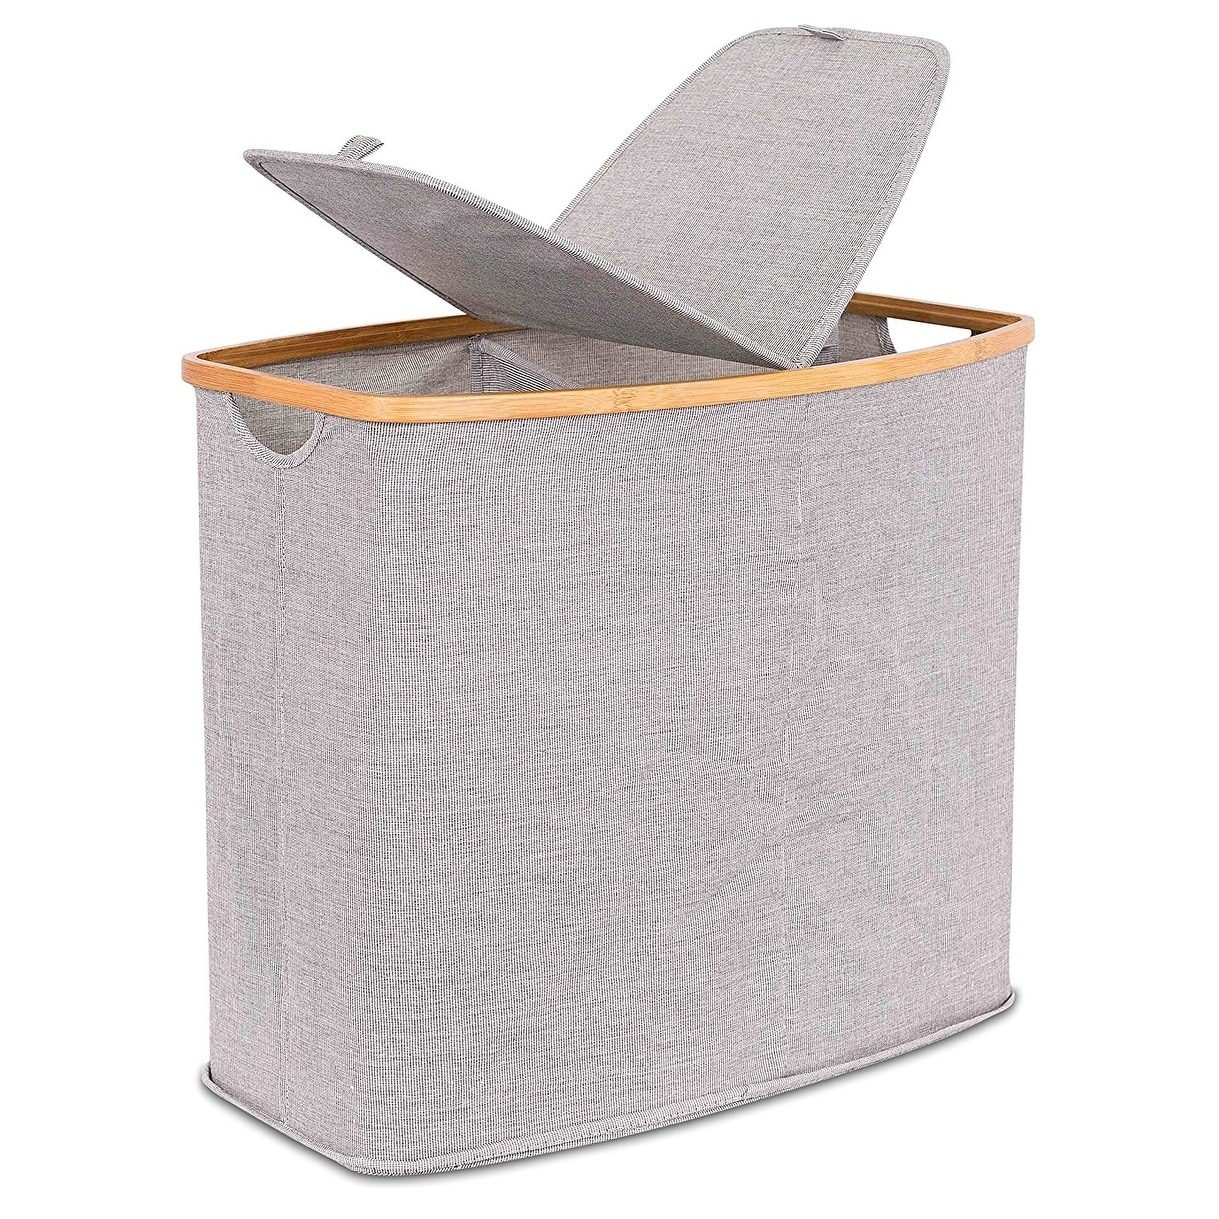 Metal Wash Bin Buy Laundry Baskets Hampers Online At Overstock Our Best